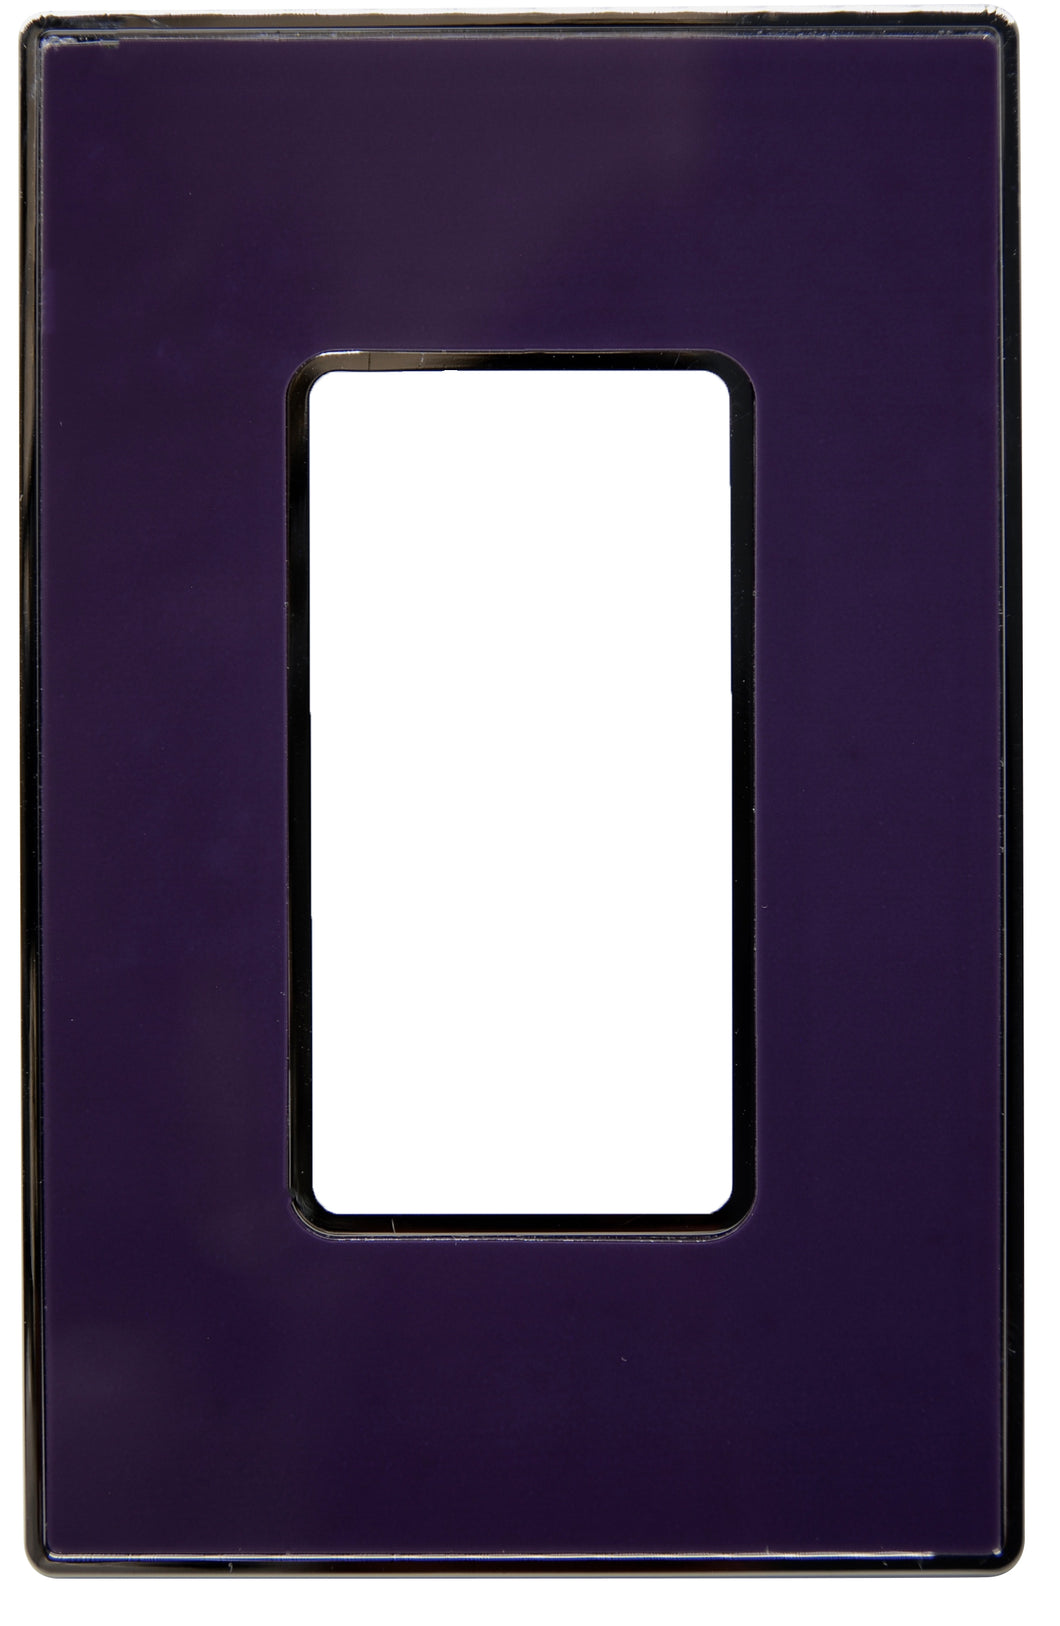 UC21 Purple/ 1-Gang Rocker Cover & Chrome Frame